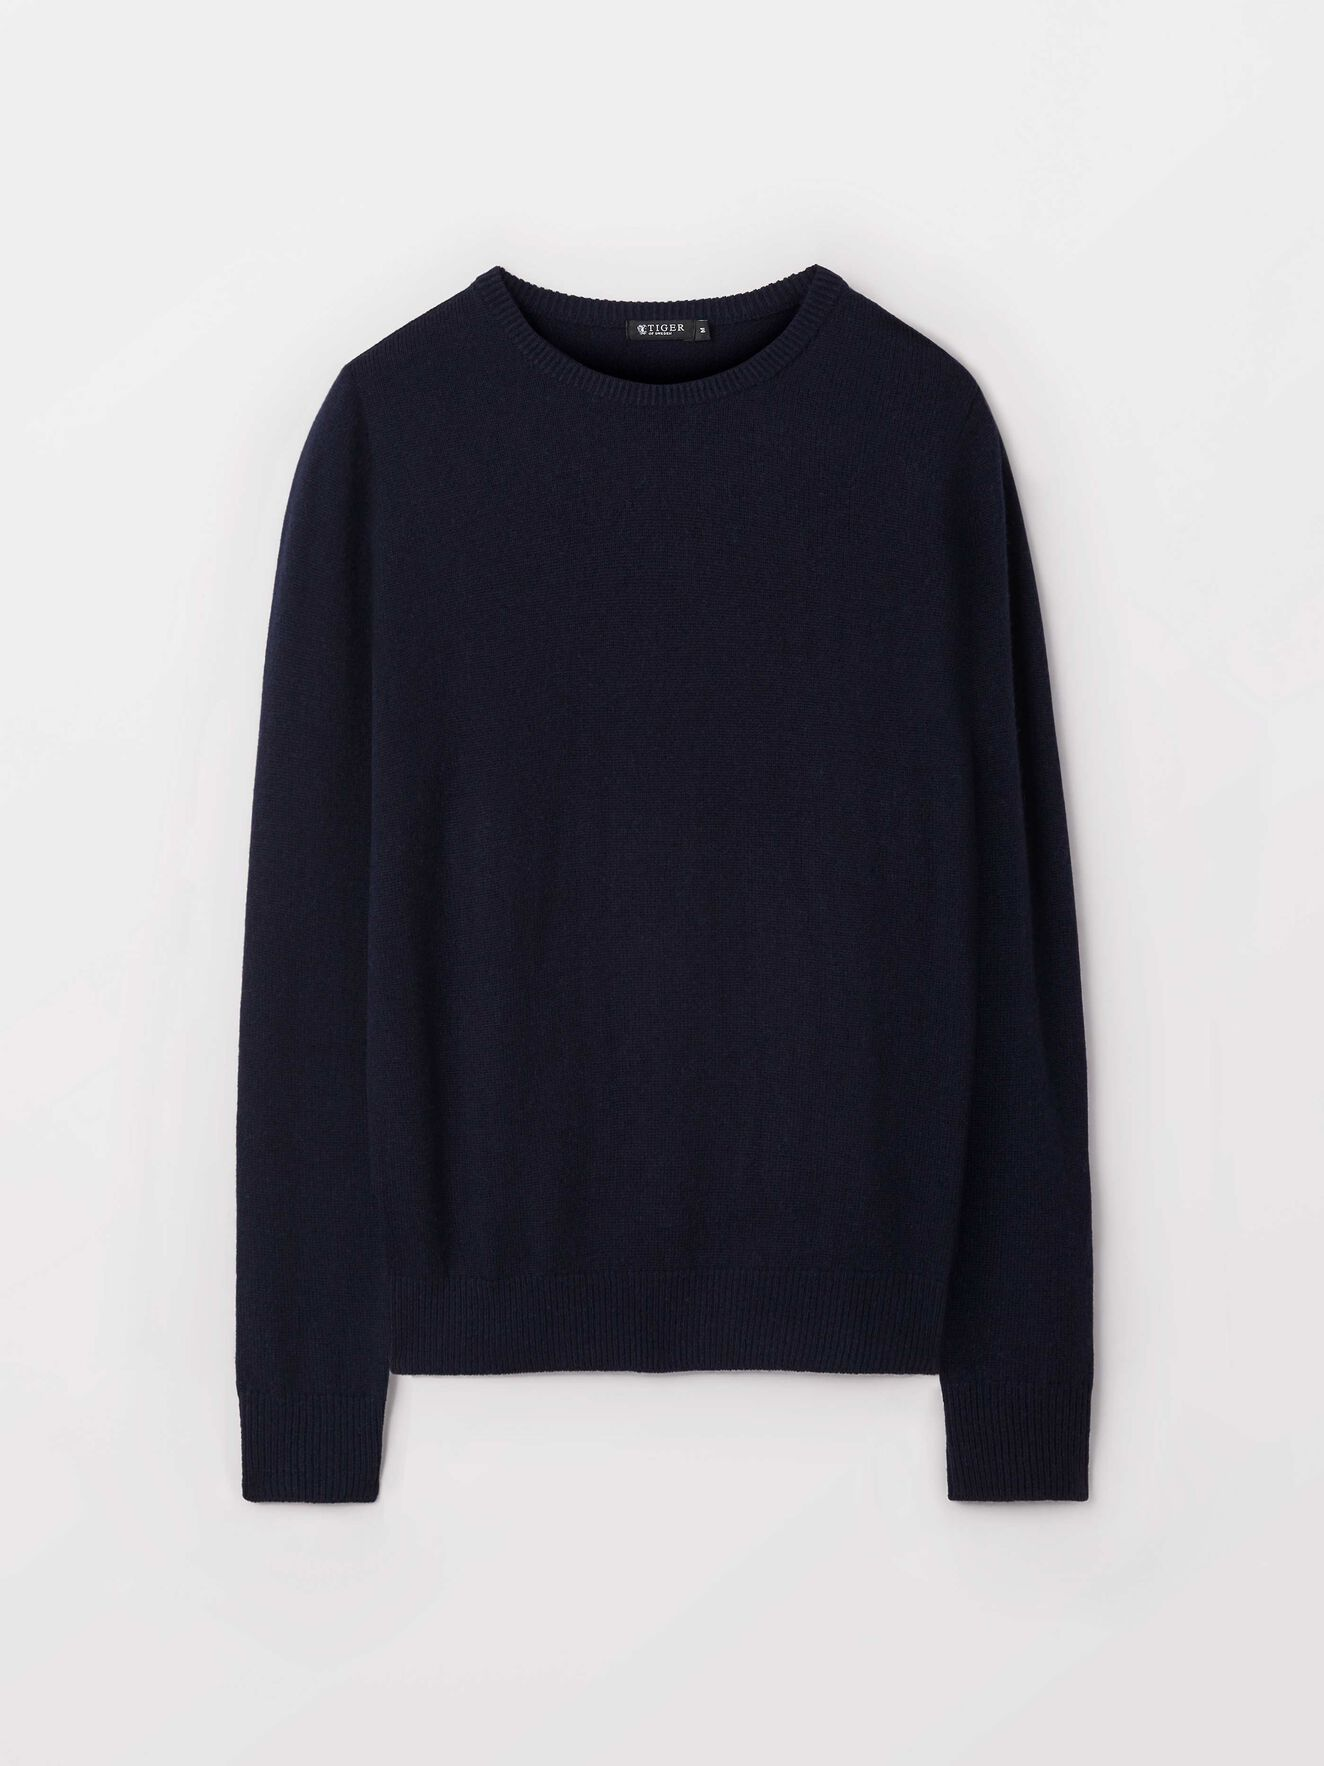 Nickol Pullover in Light Ink from Tiger of Sweden